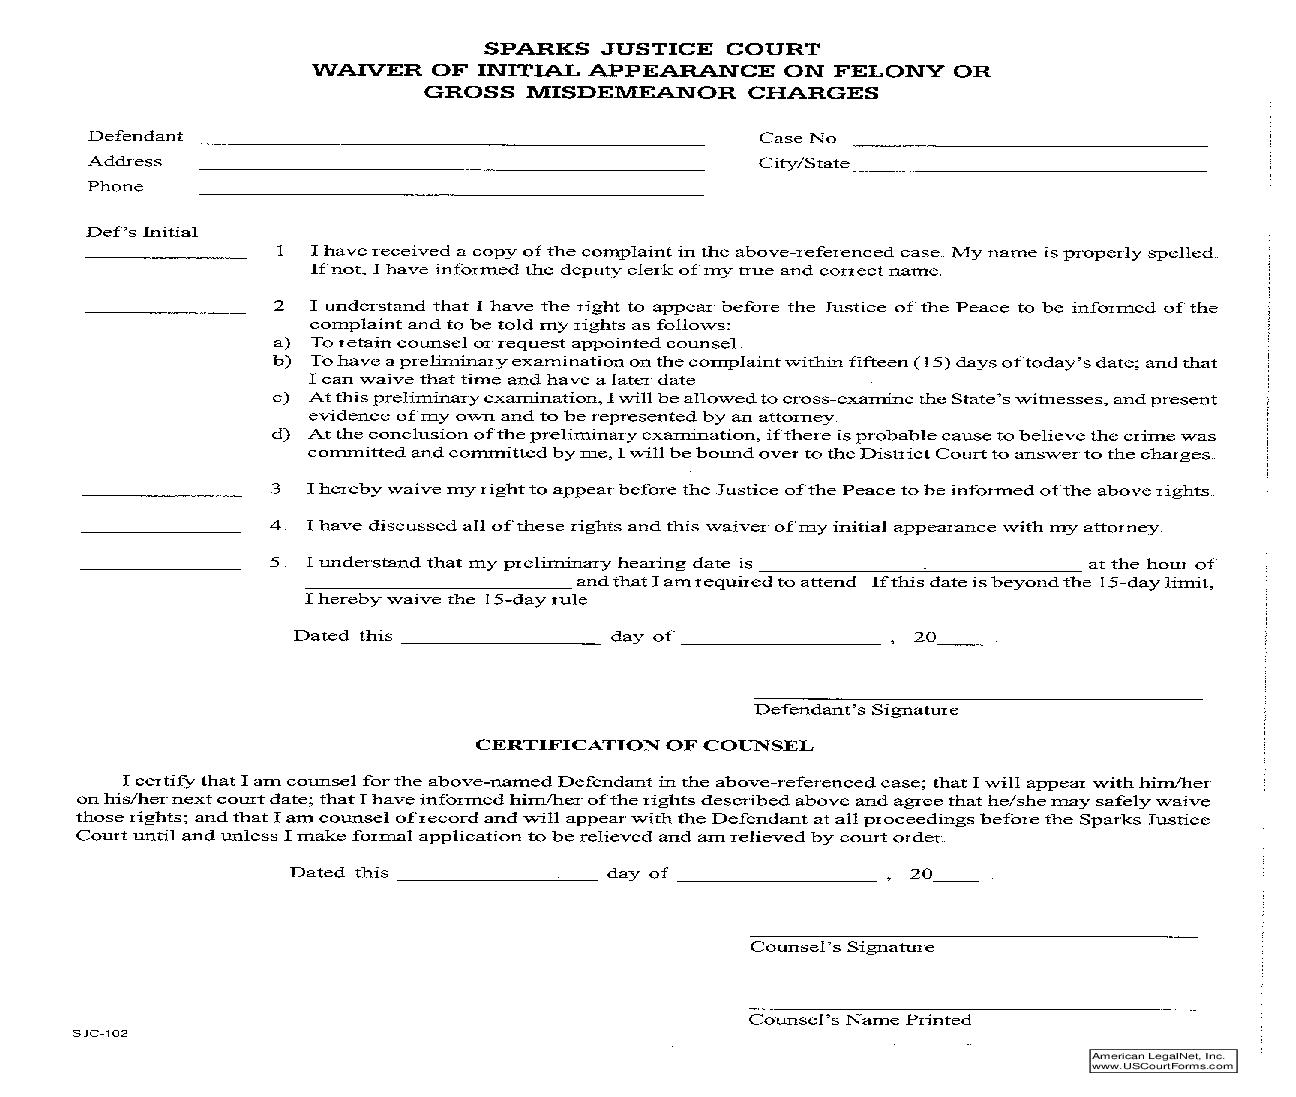 Waiver Of Initial Appearance On Felony Or Gross Misdemeanor Charges | Pdf Fpdf Doc Docx | Nevada